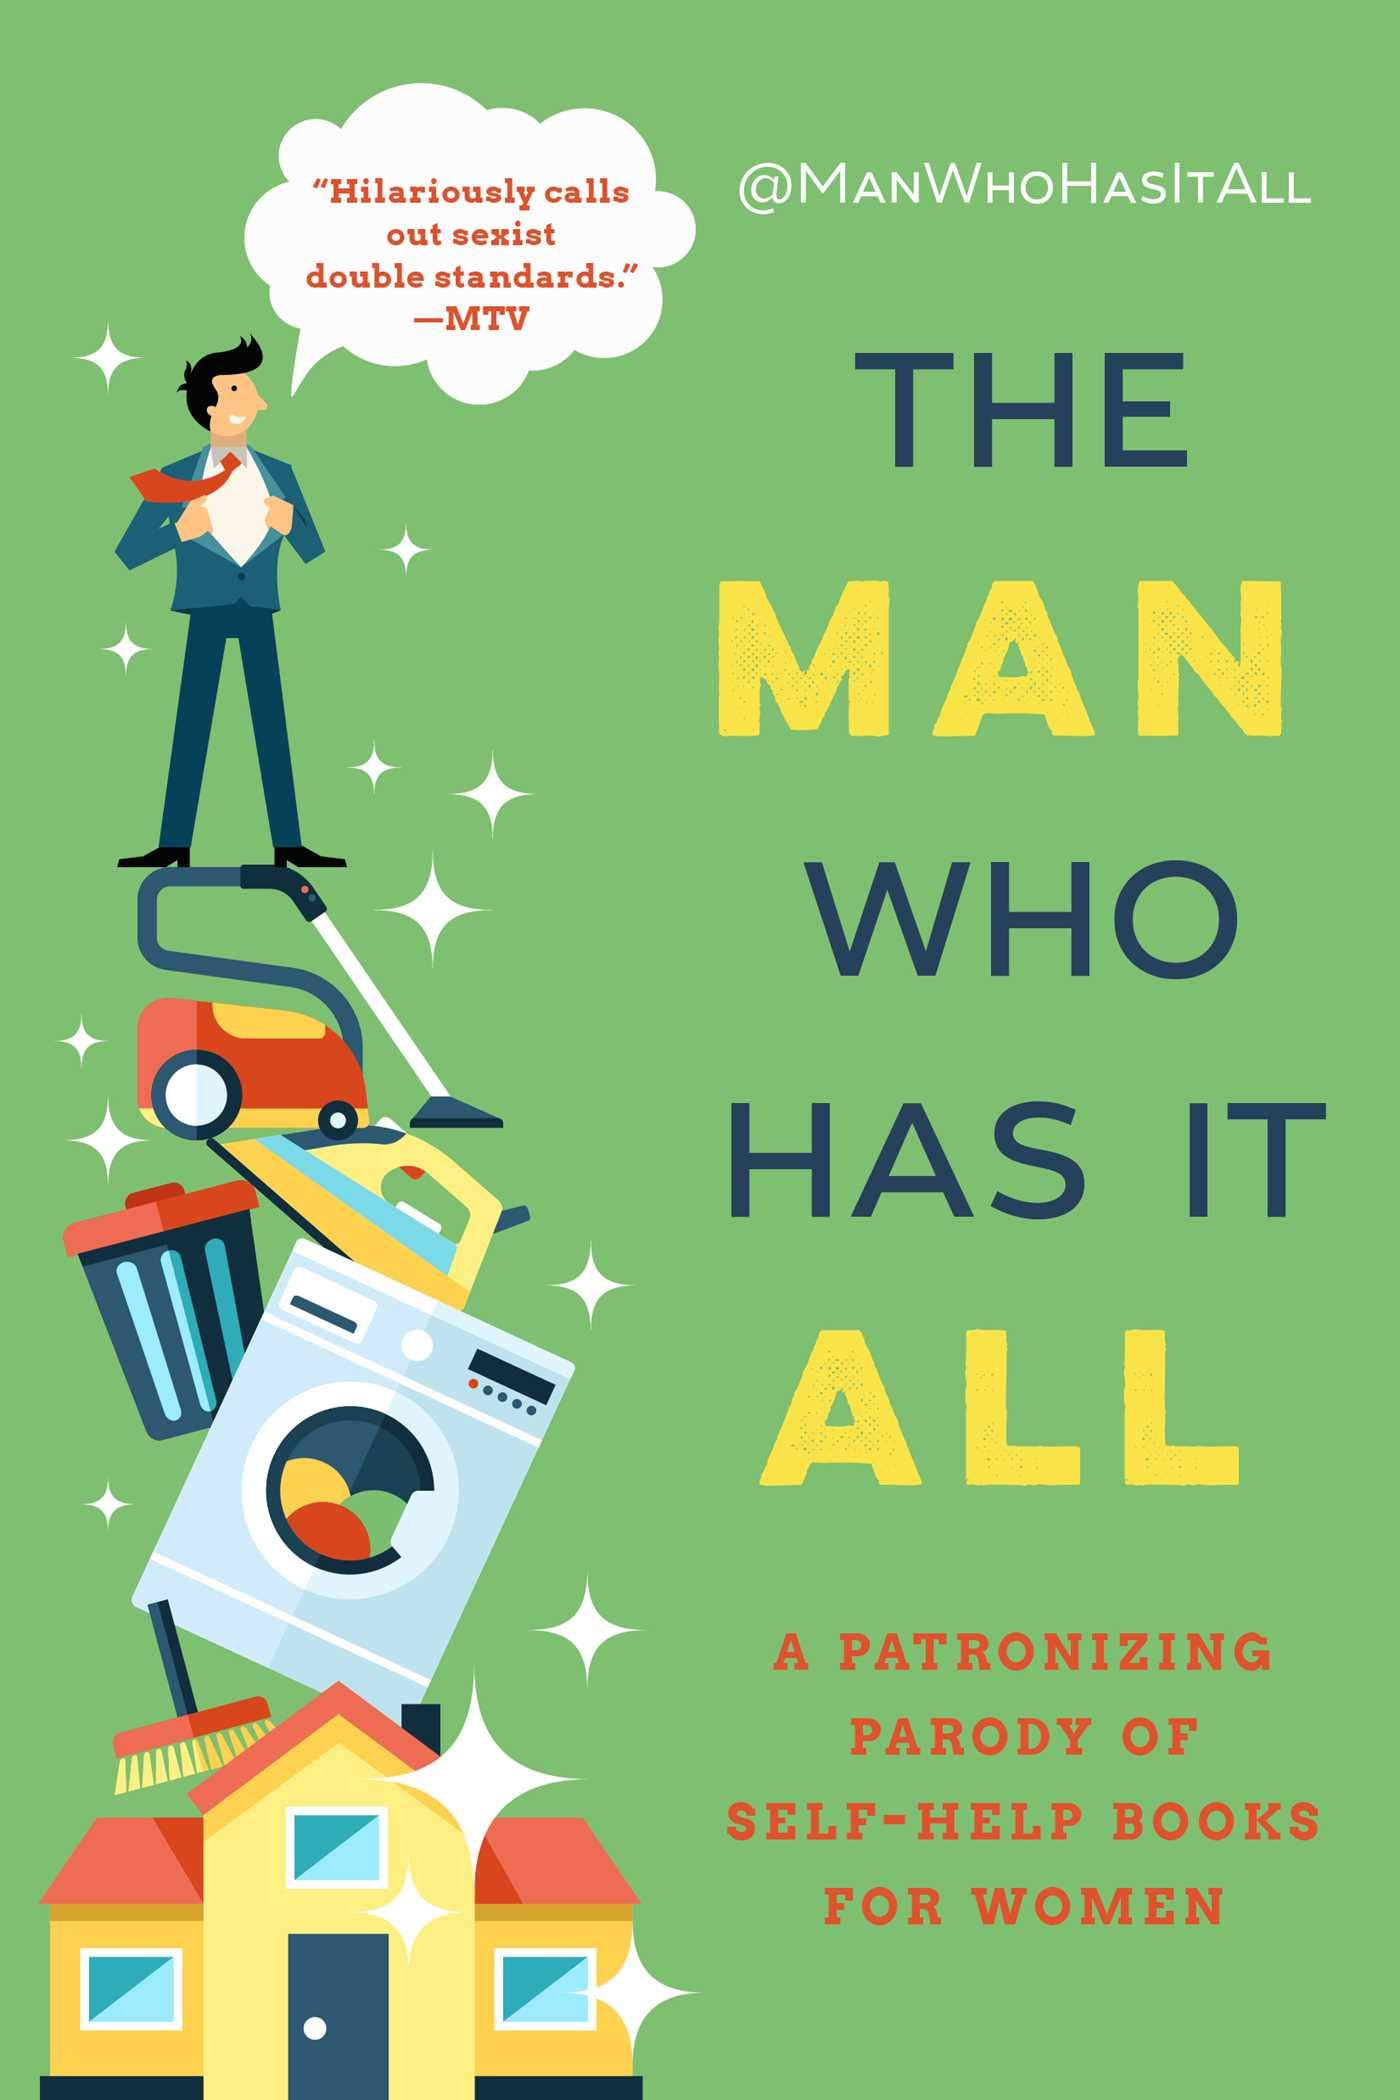 The Man Who Has It All: A Patronizing Parody of Self-Help Books for Women